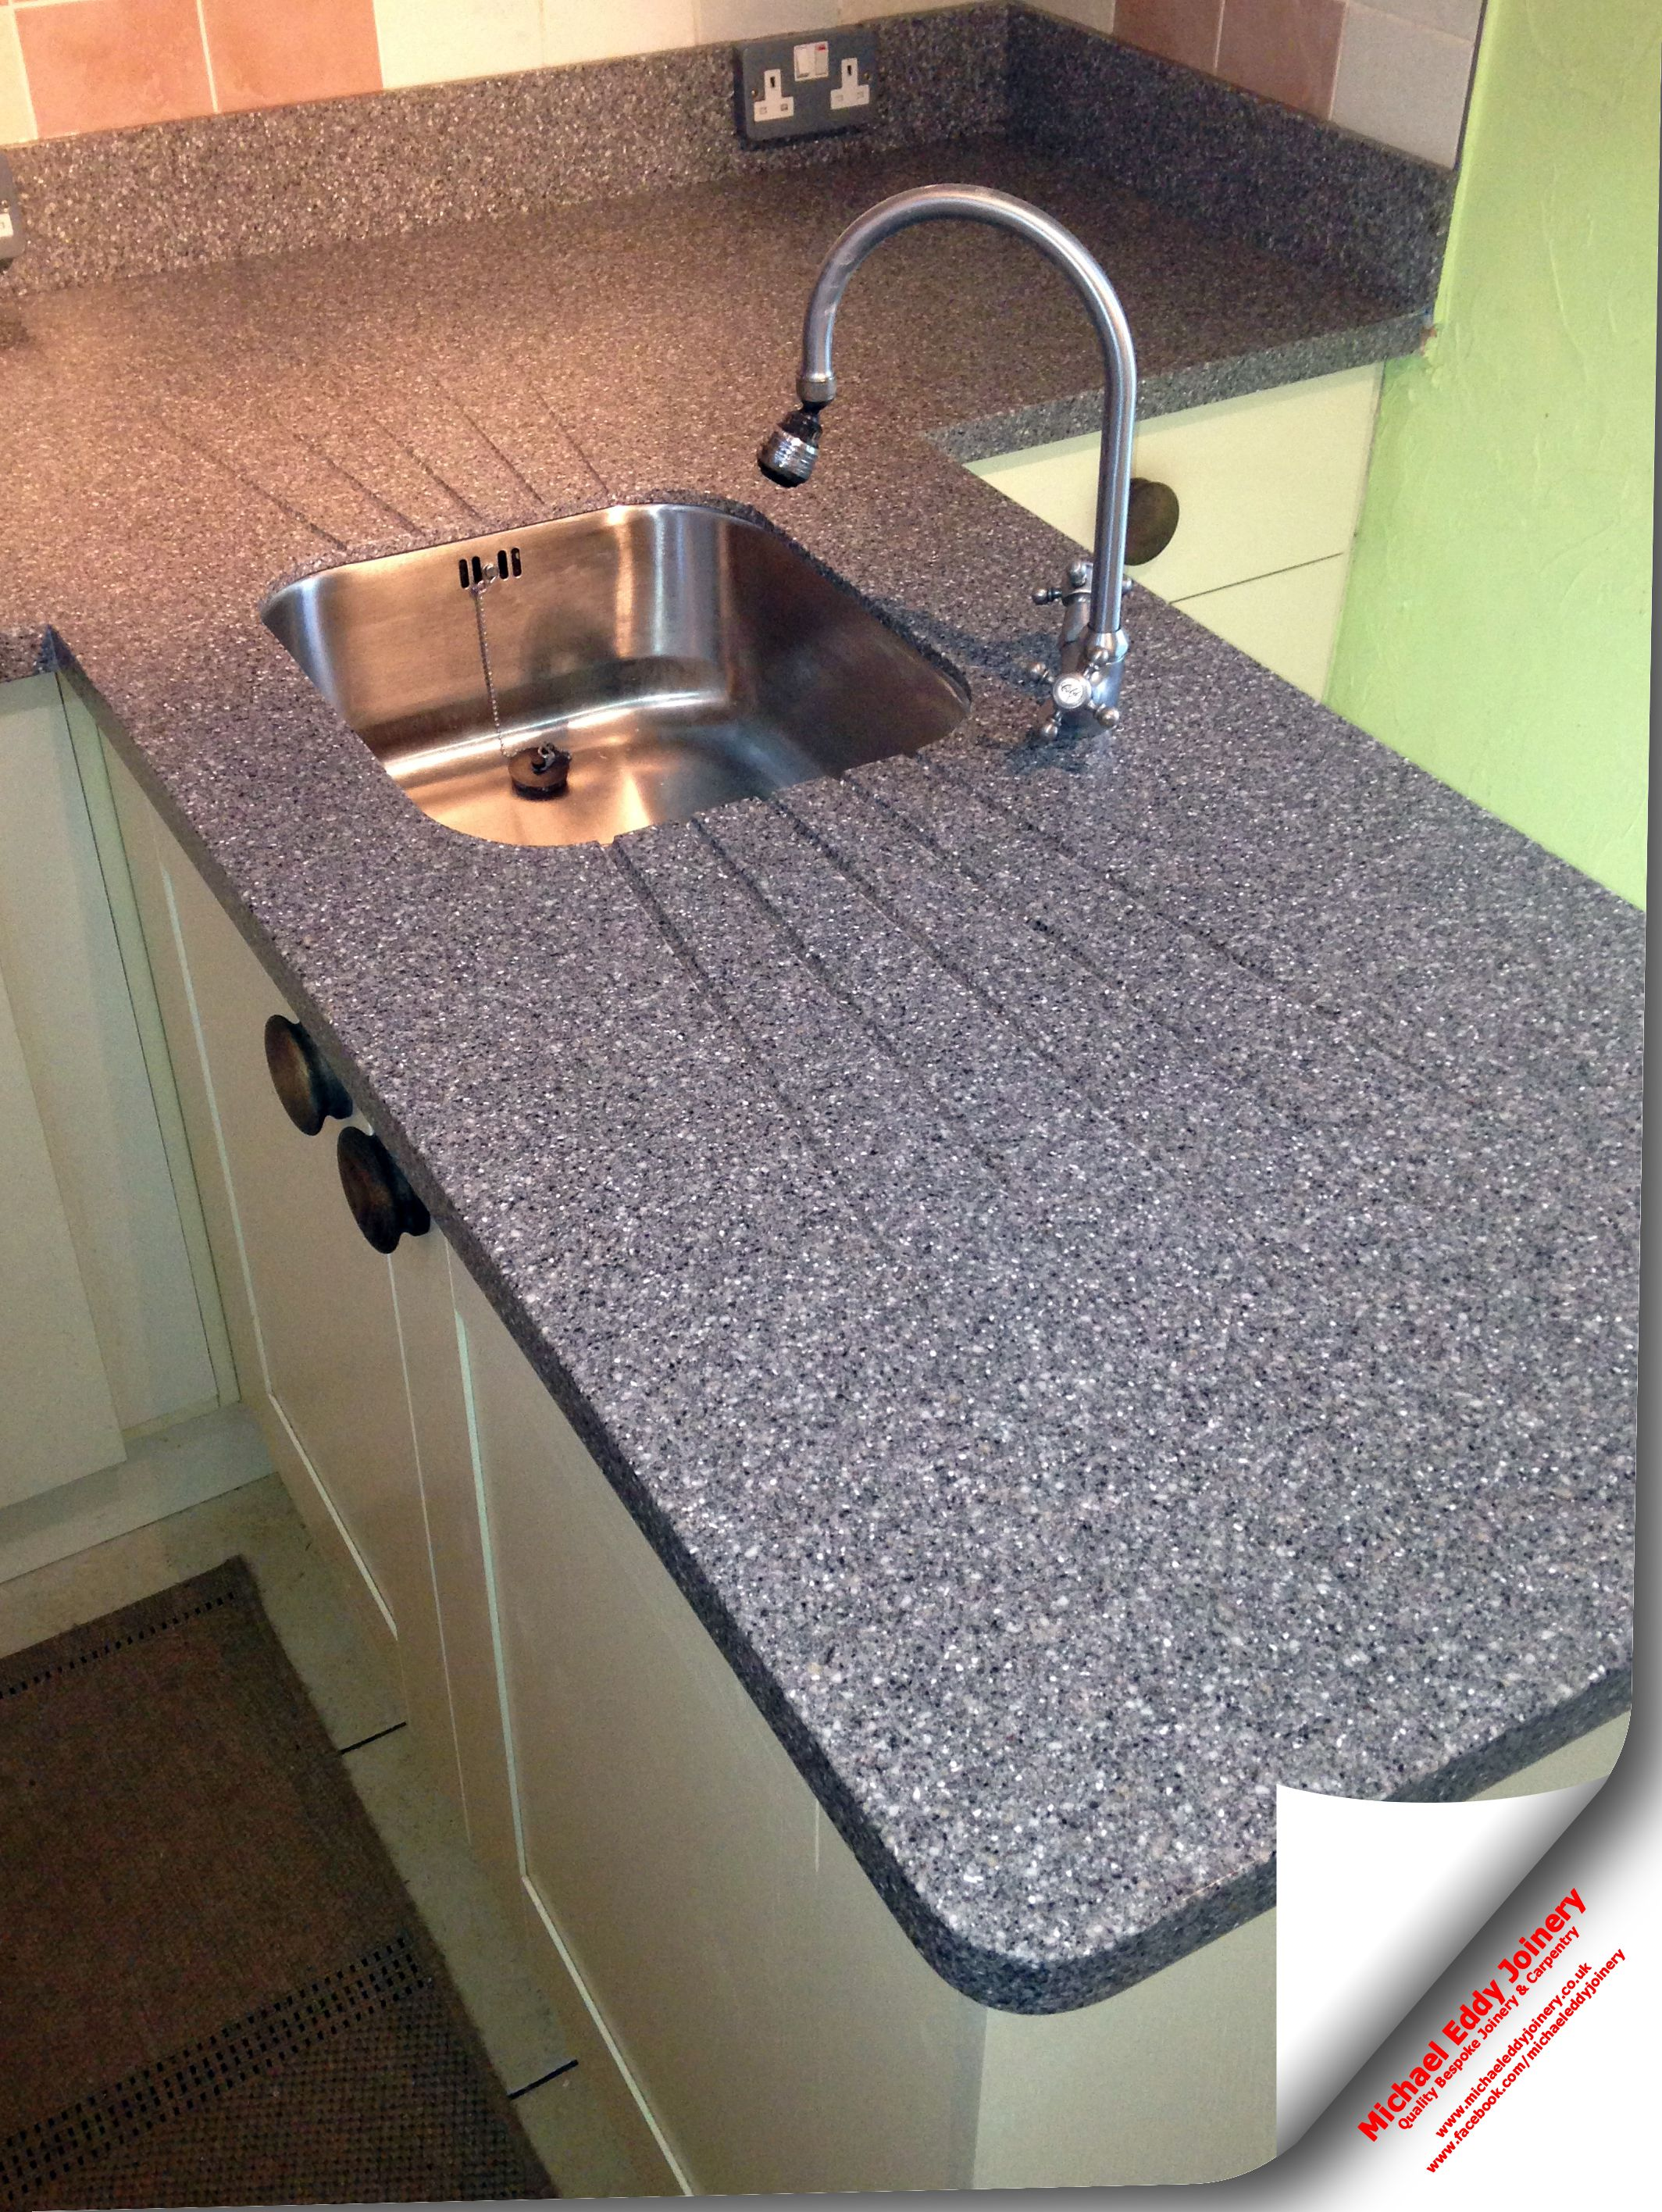 gray granite worktops with sink and angled drainer grooves